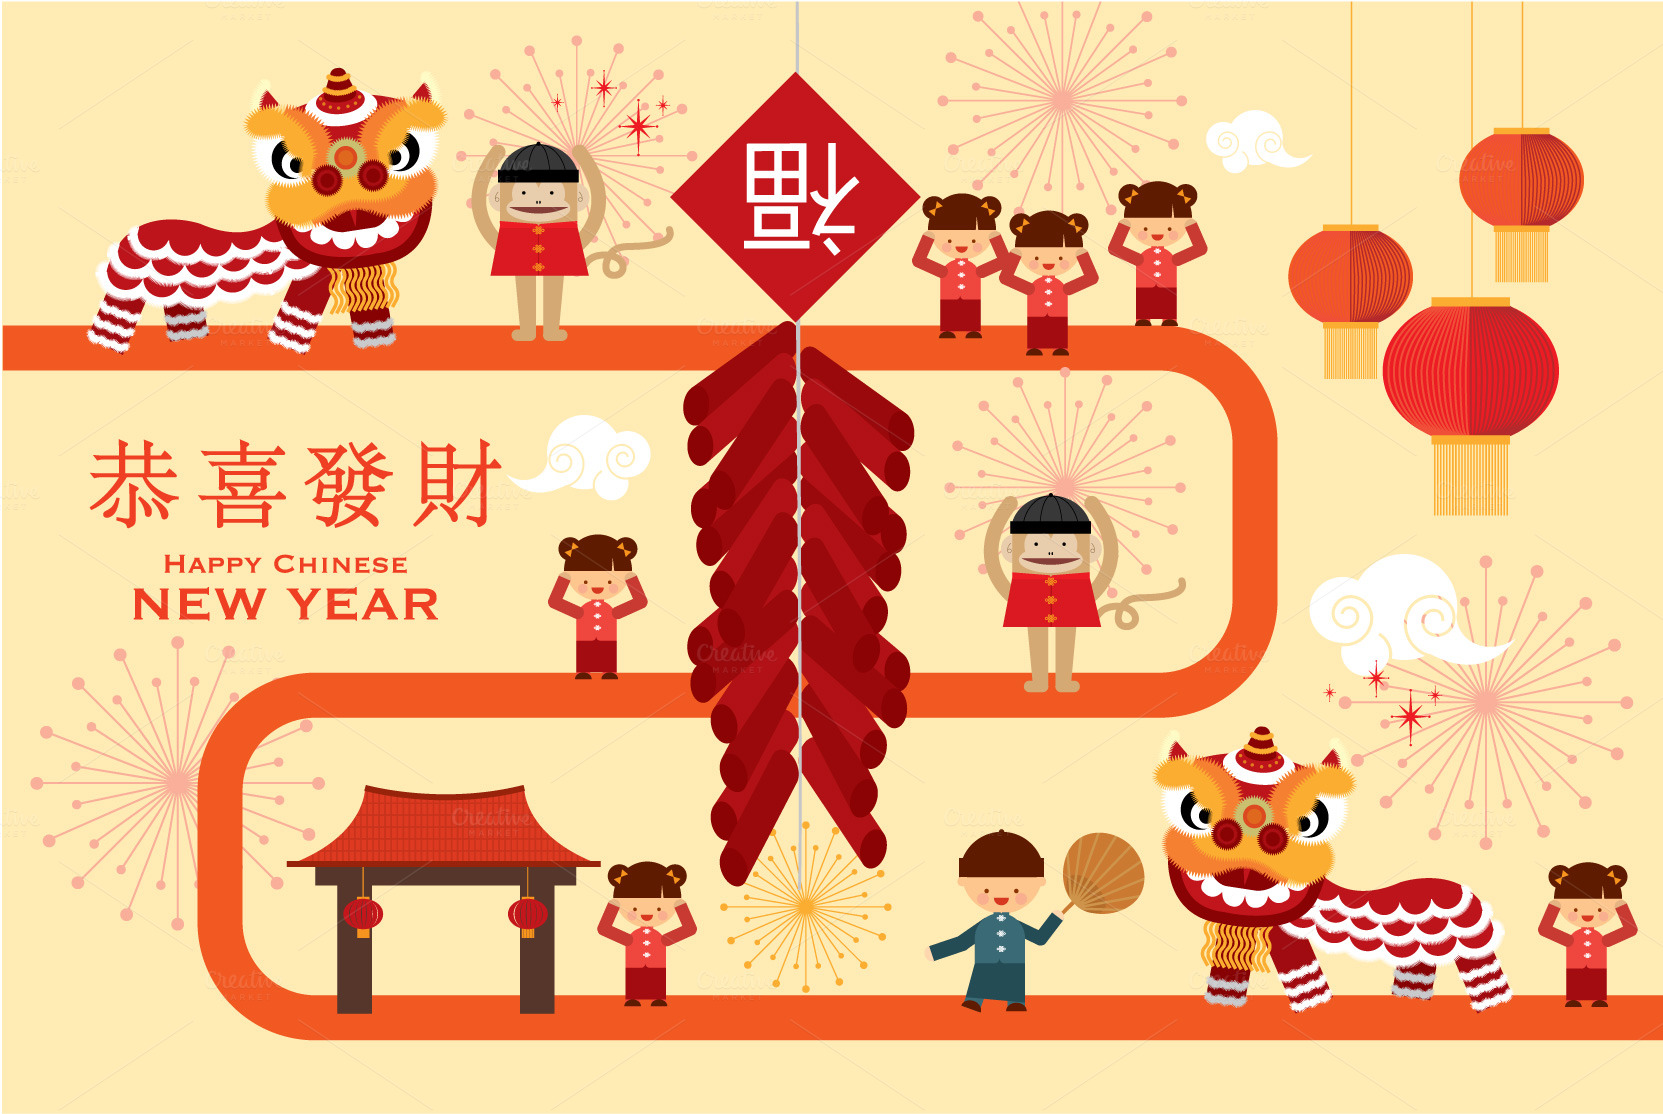 15 Basic Chinese New Year Wishes You Should Totally Know By Now